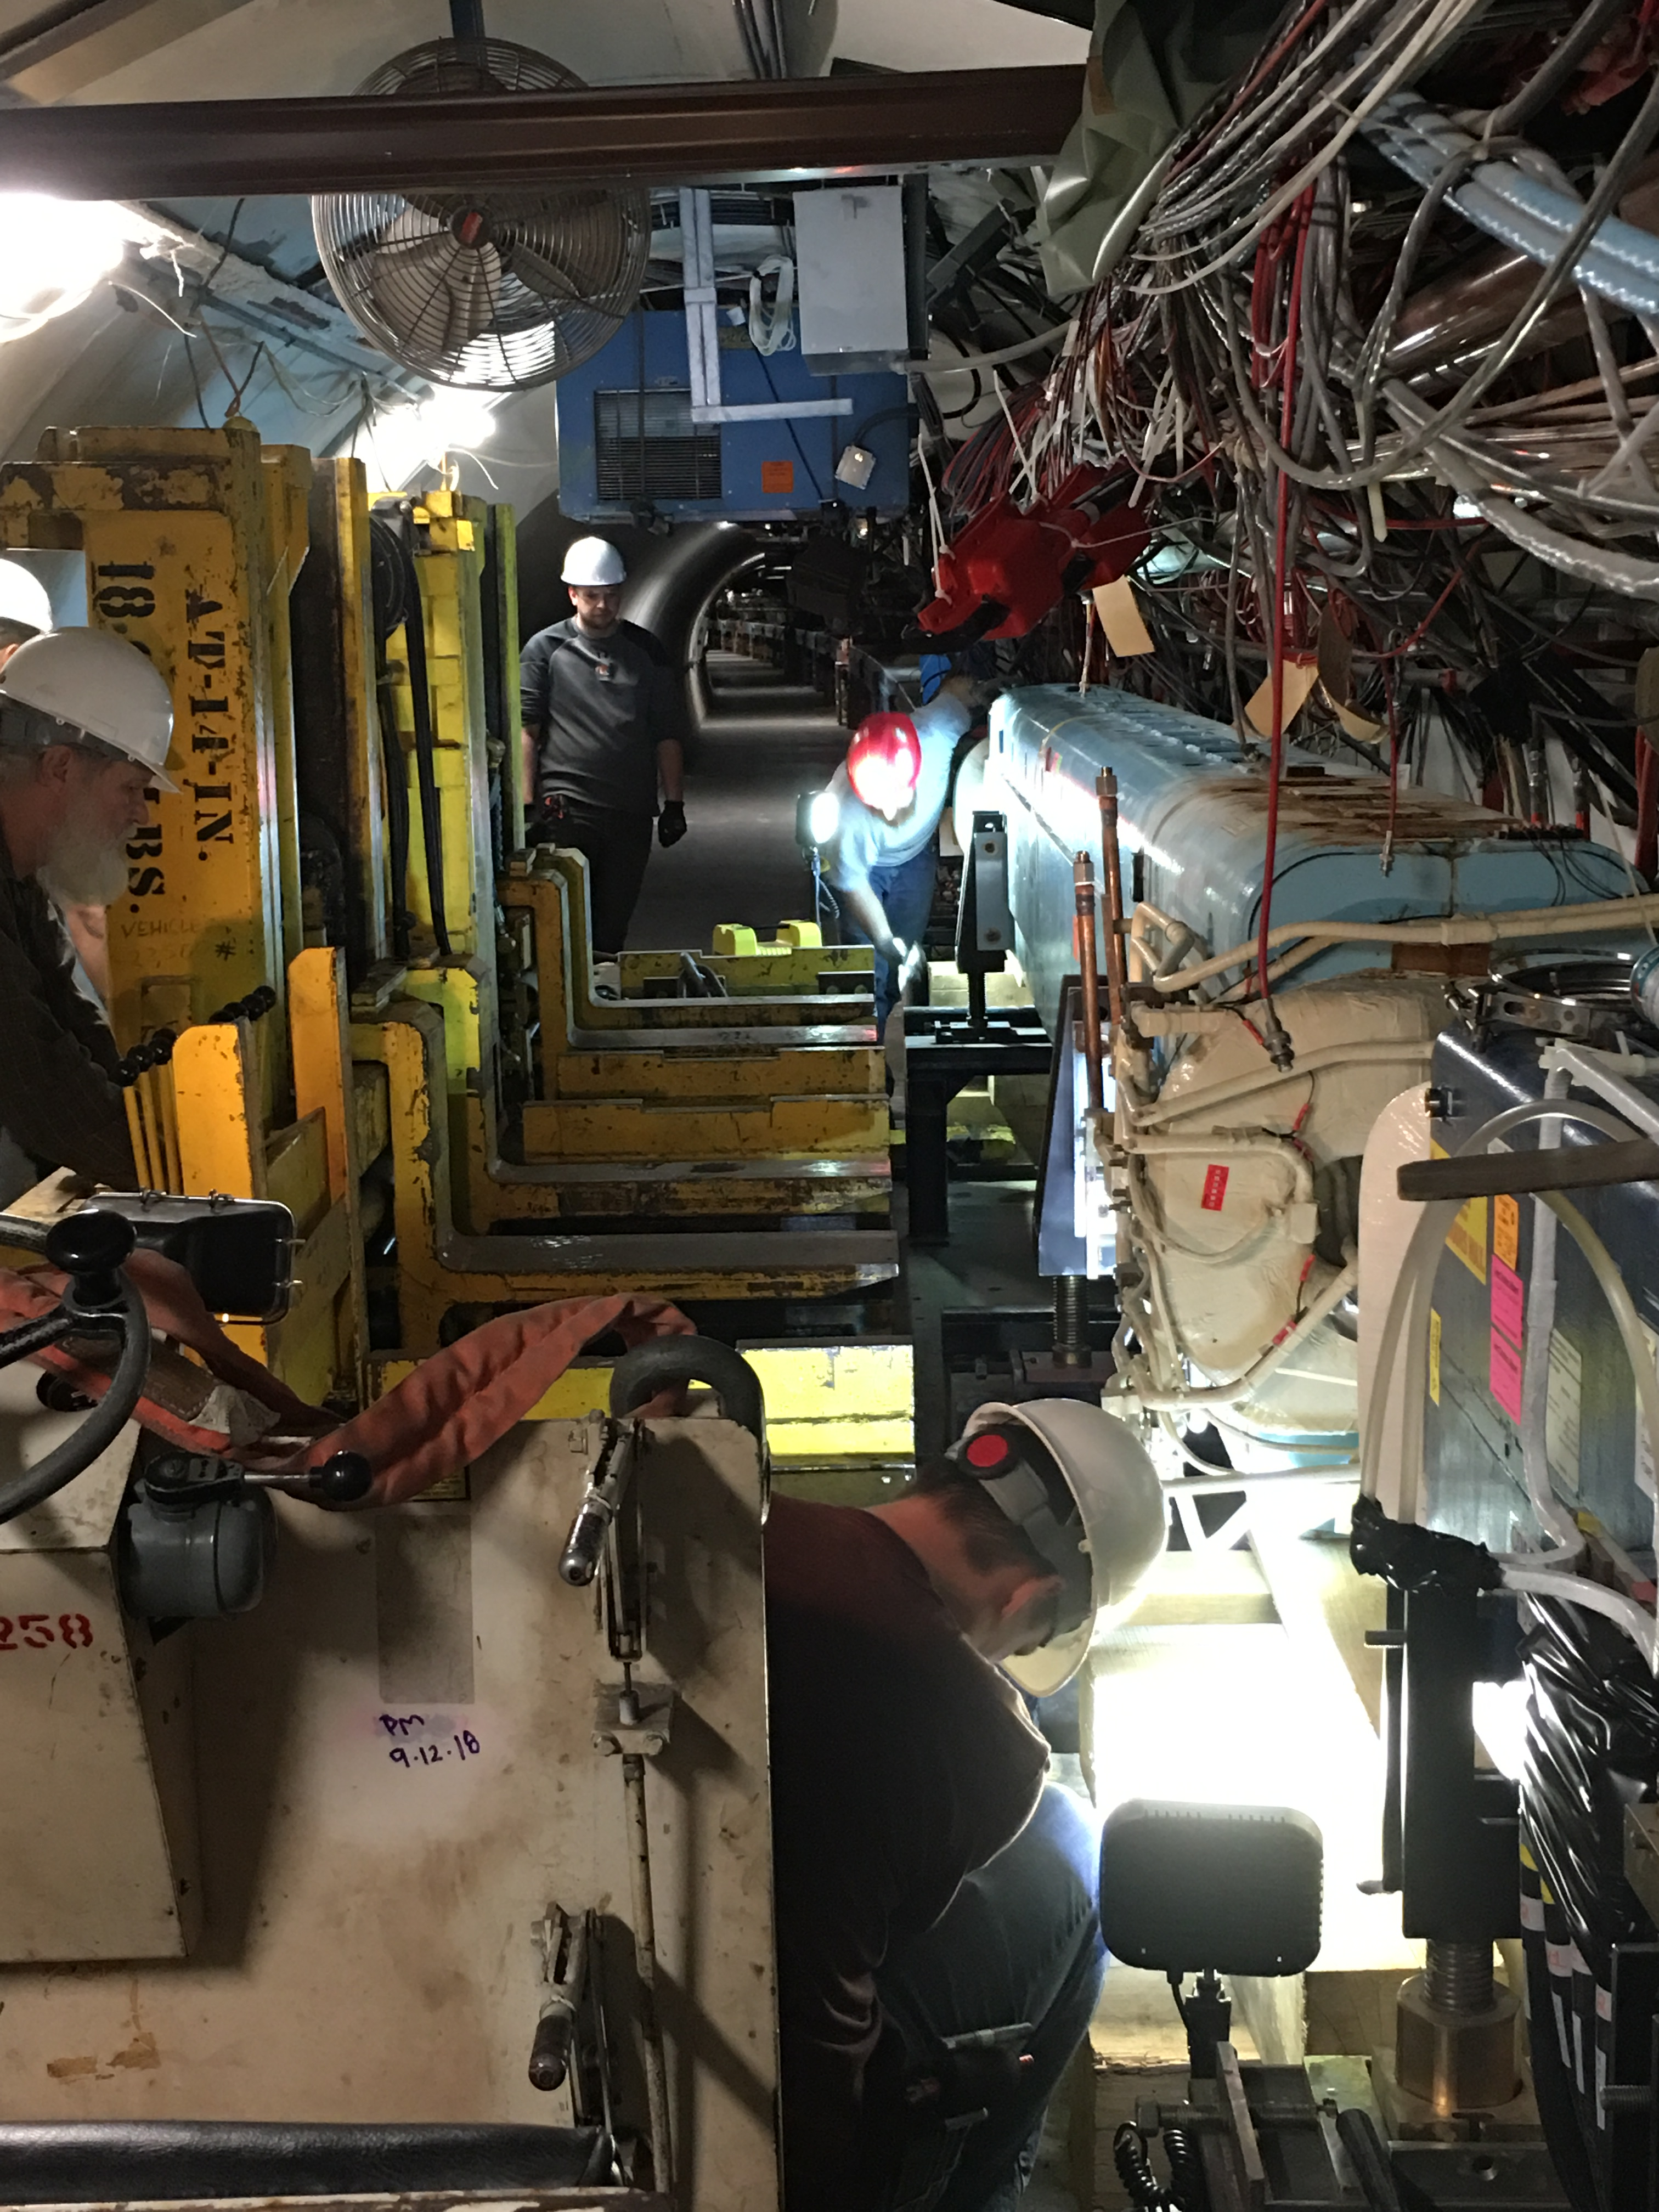 (1/3) On March 6, a 30,000-pound B3 magnet was changed out in the F17 area. people, accelerator, magnet Photo: Christine Ader